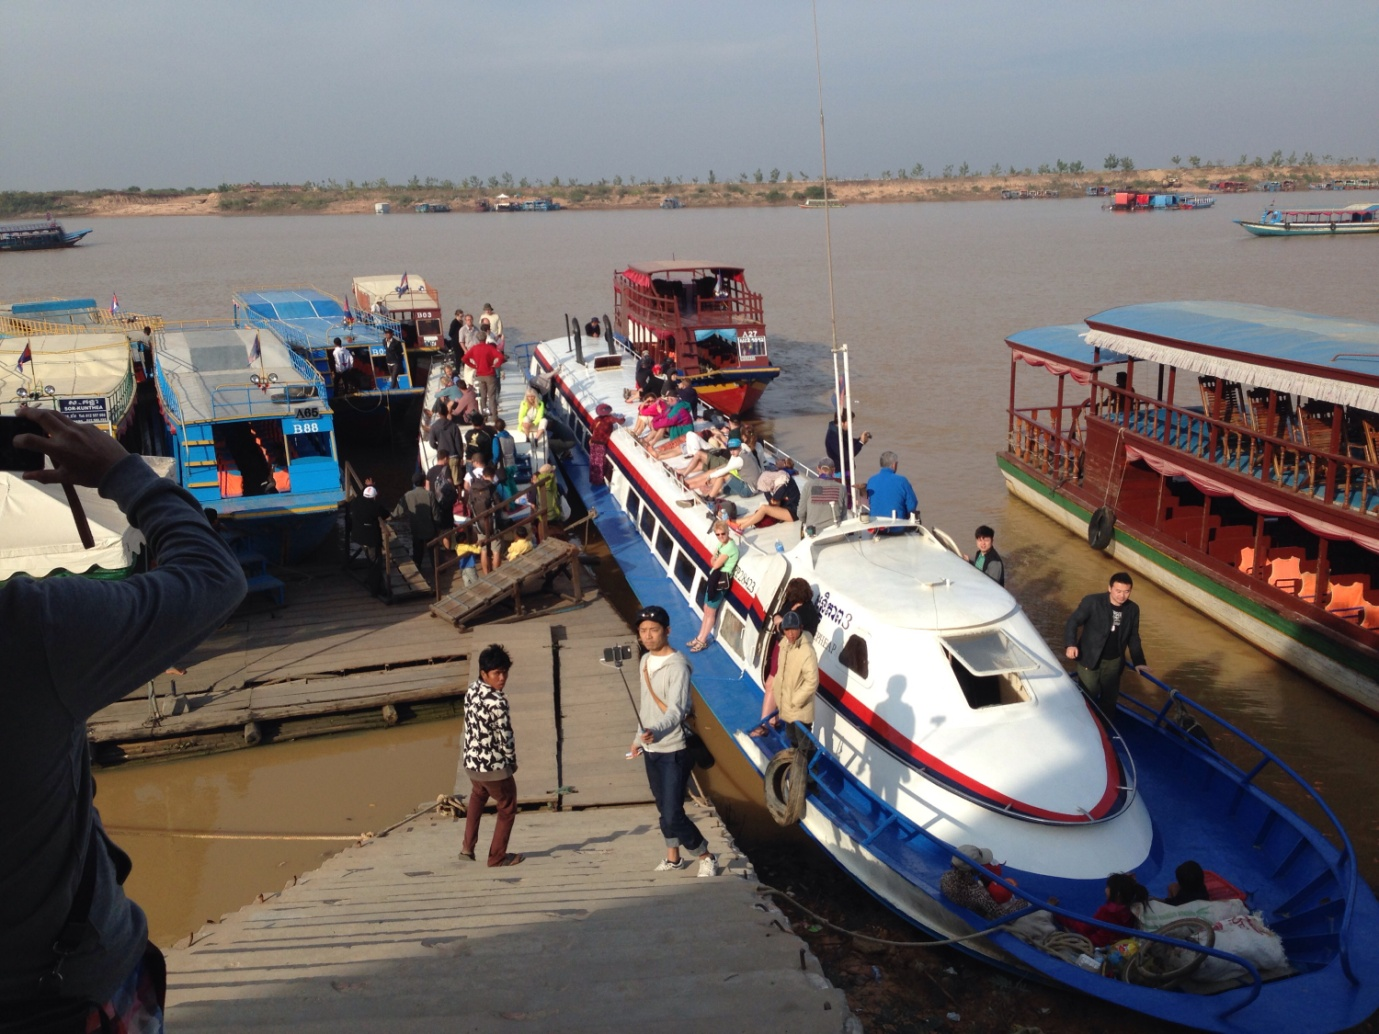 Siem Reap ferry dock